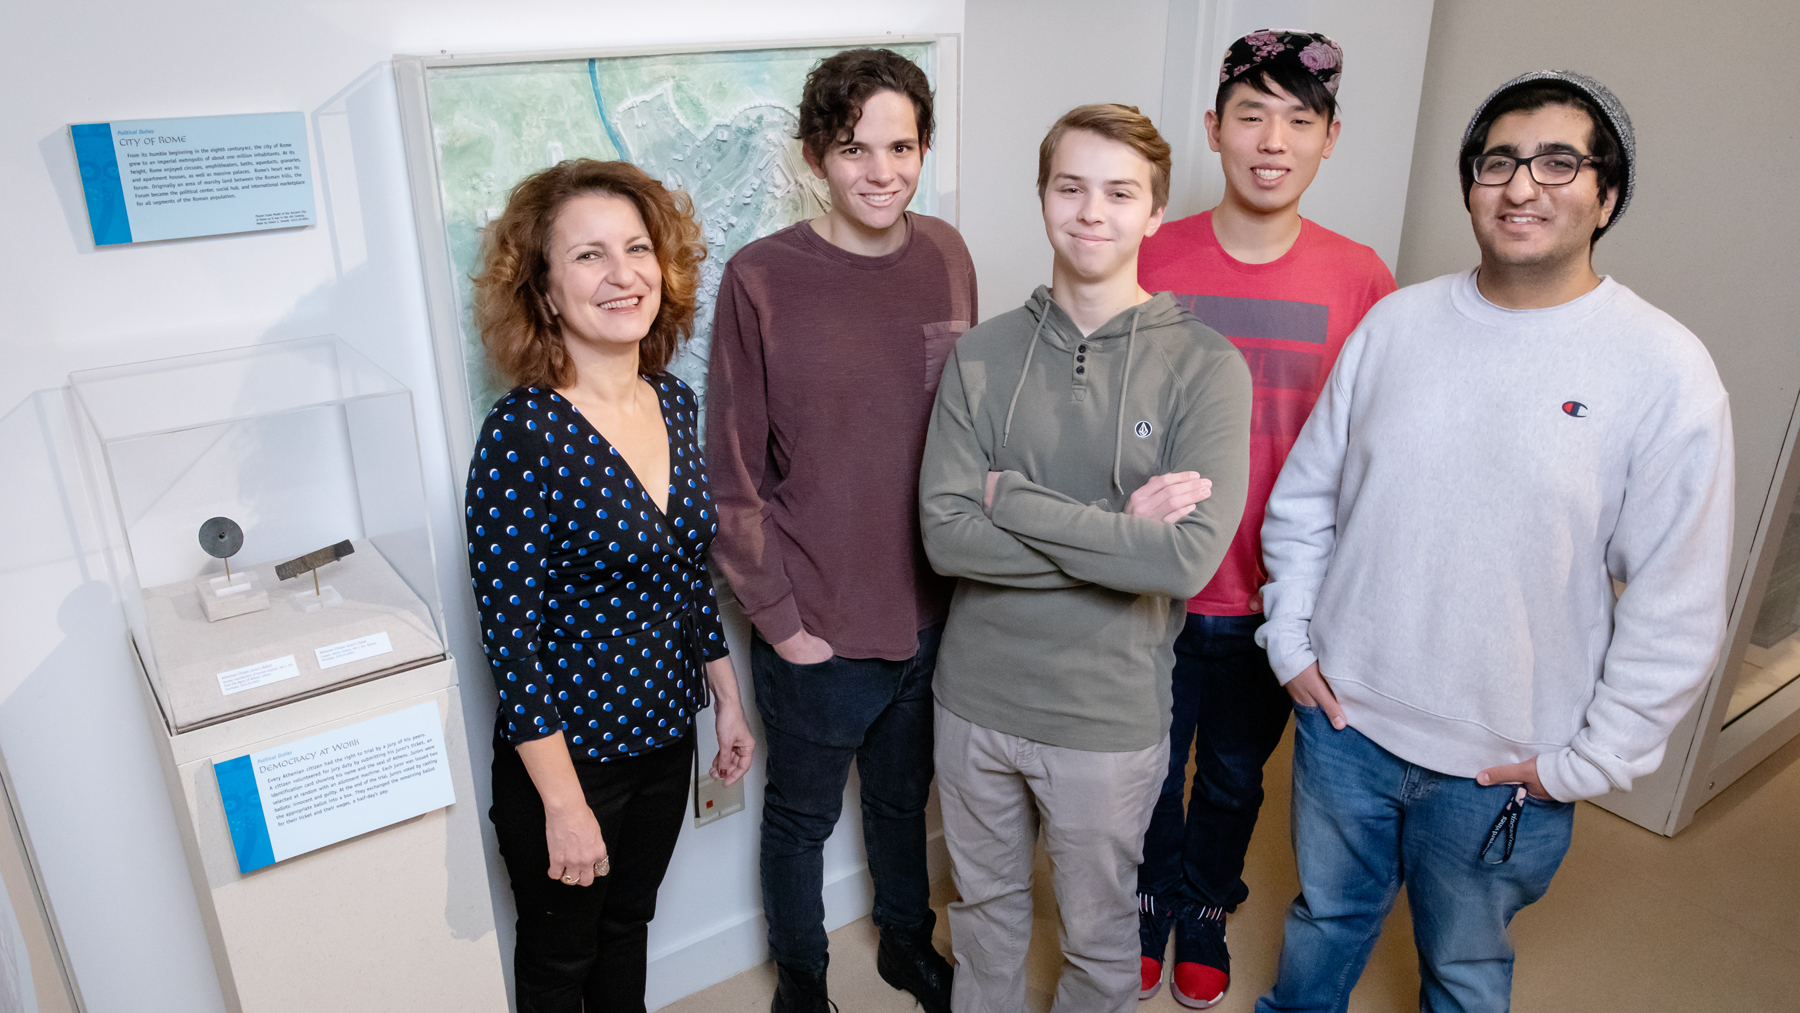 Classics professor Angeliki Tzanetou and students Oscar Serlin, Max Serlin, Vincent Kim and Hamza Lodhia. Photo by Leslie B. Stauffer